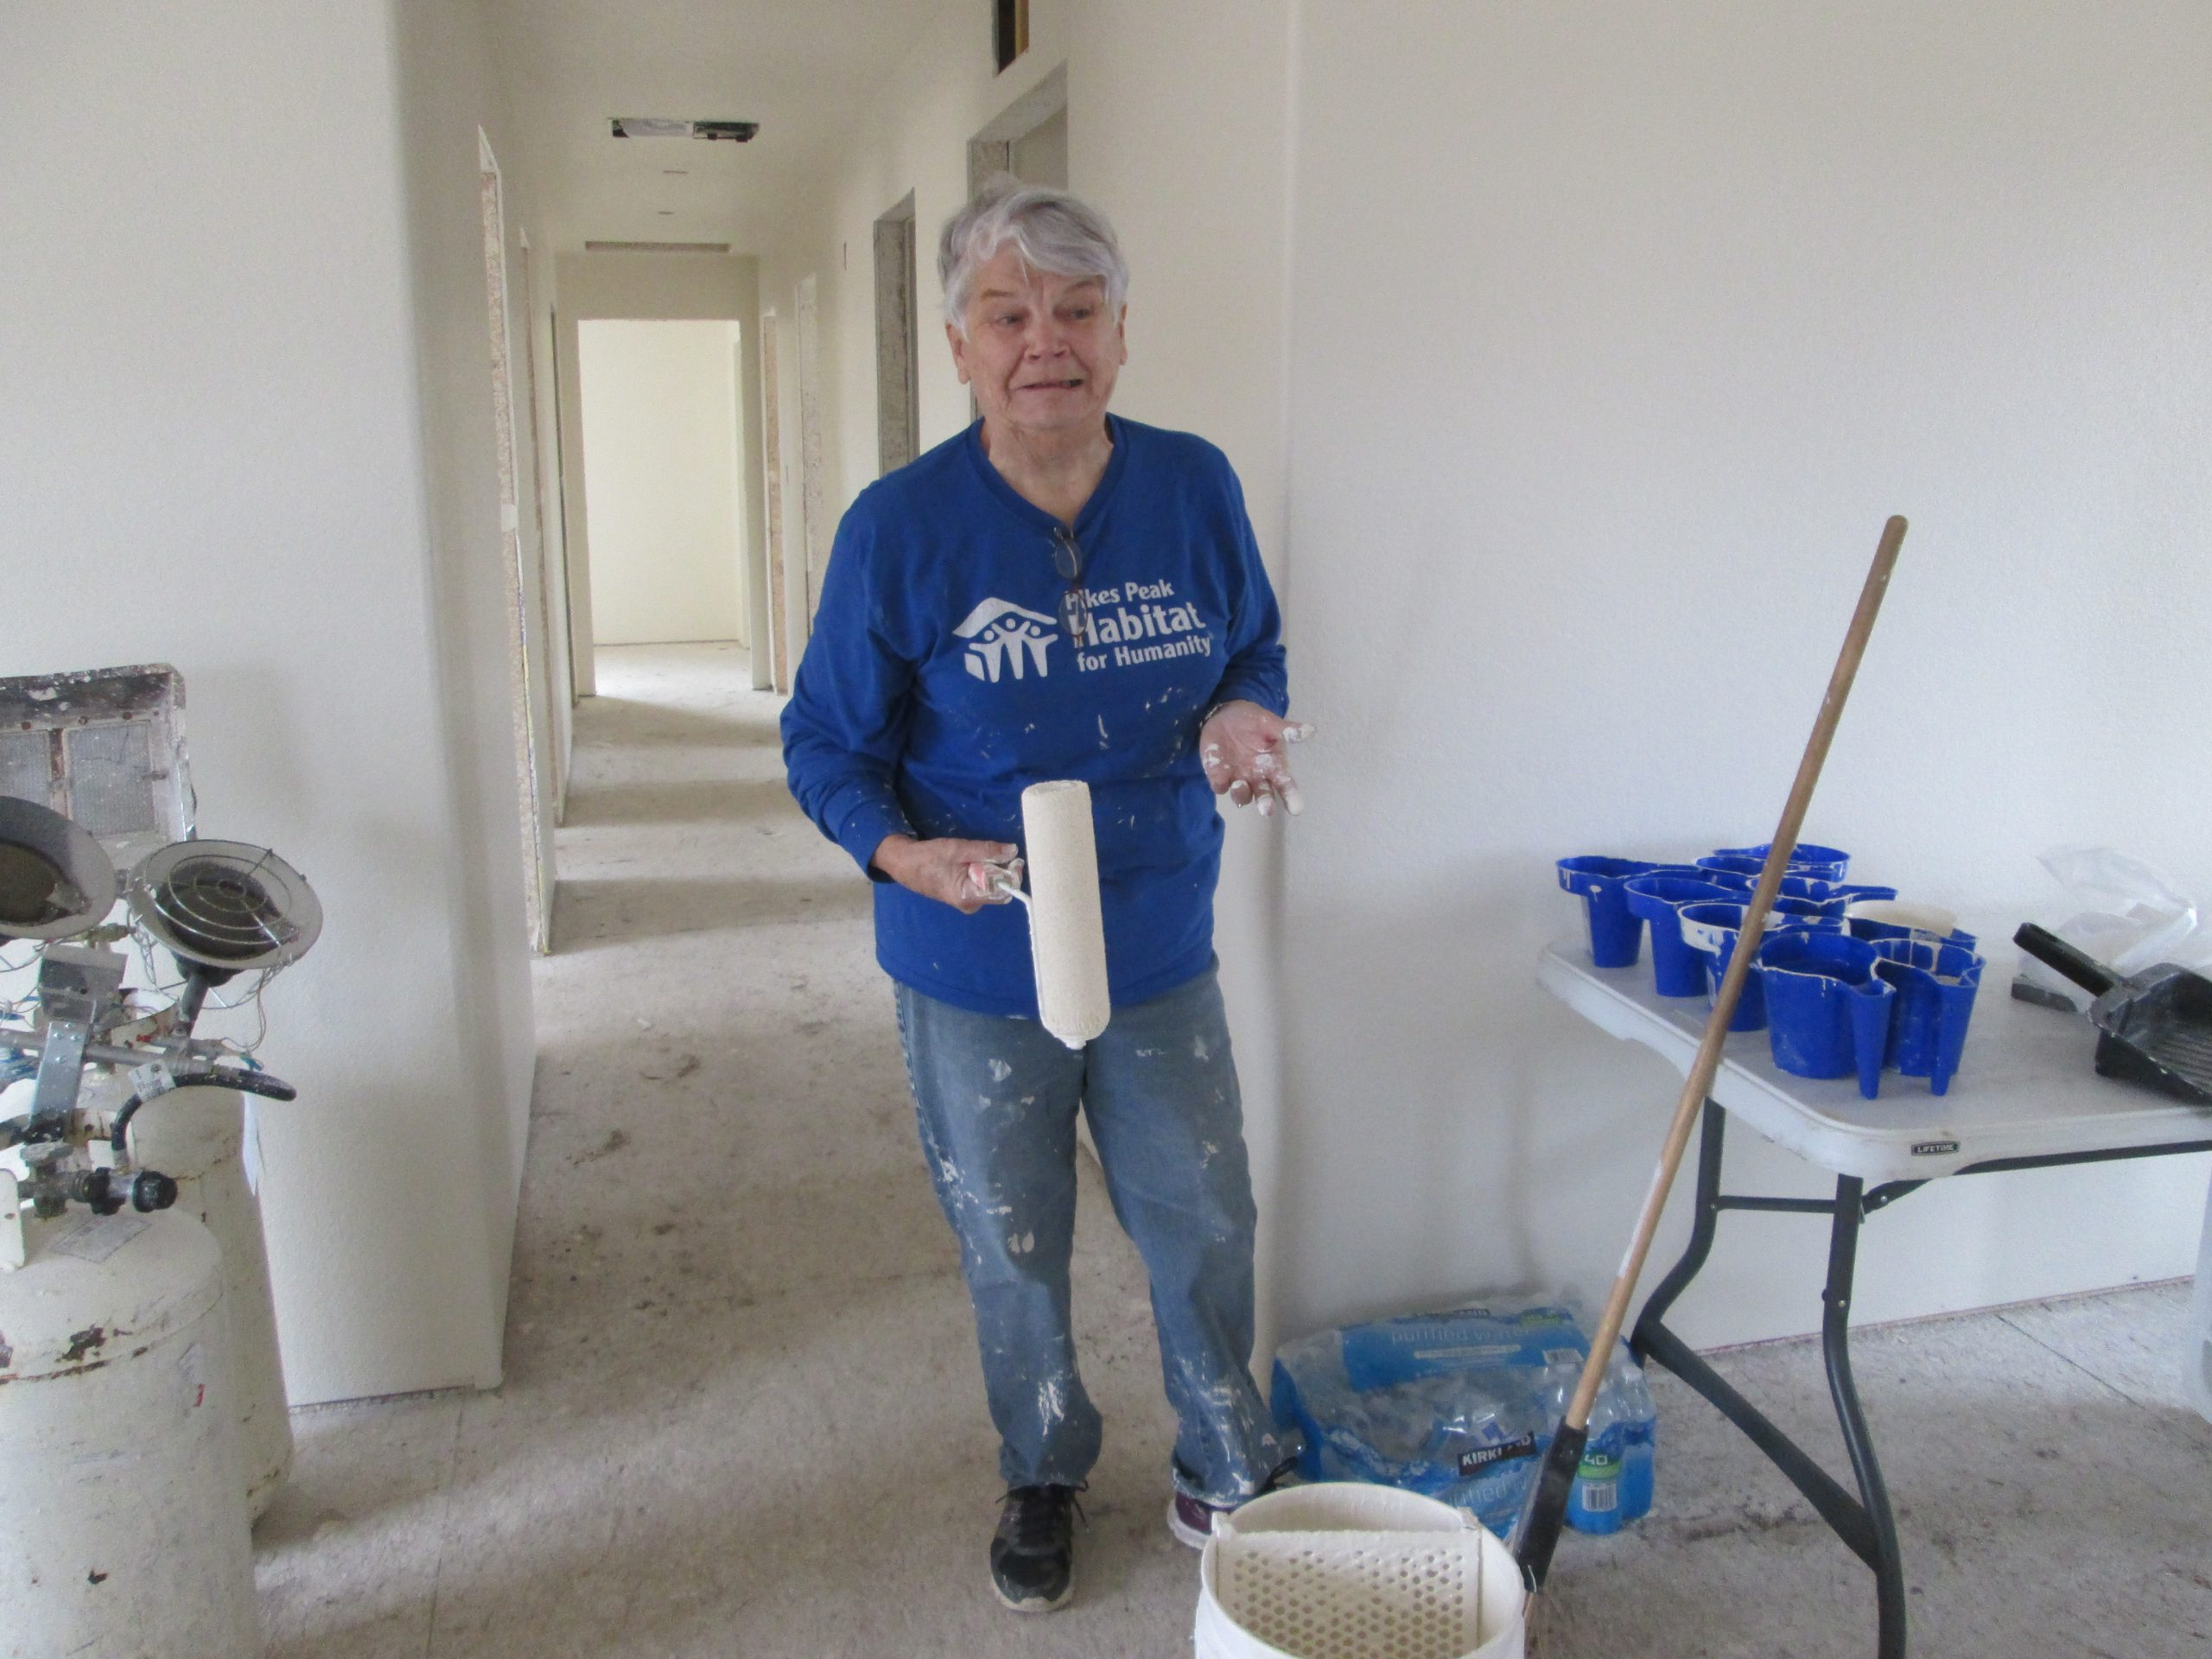 Laurel Thorstensen, board member and long time construction volunteer at Habitat painting Penny's home.